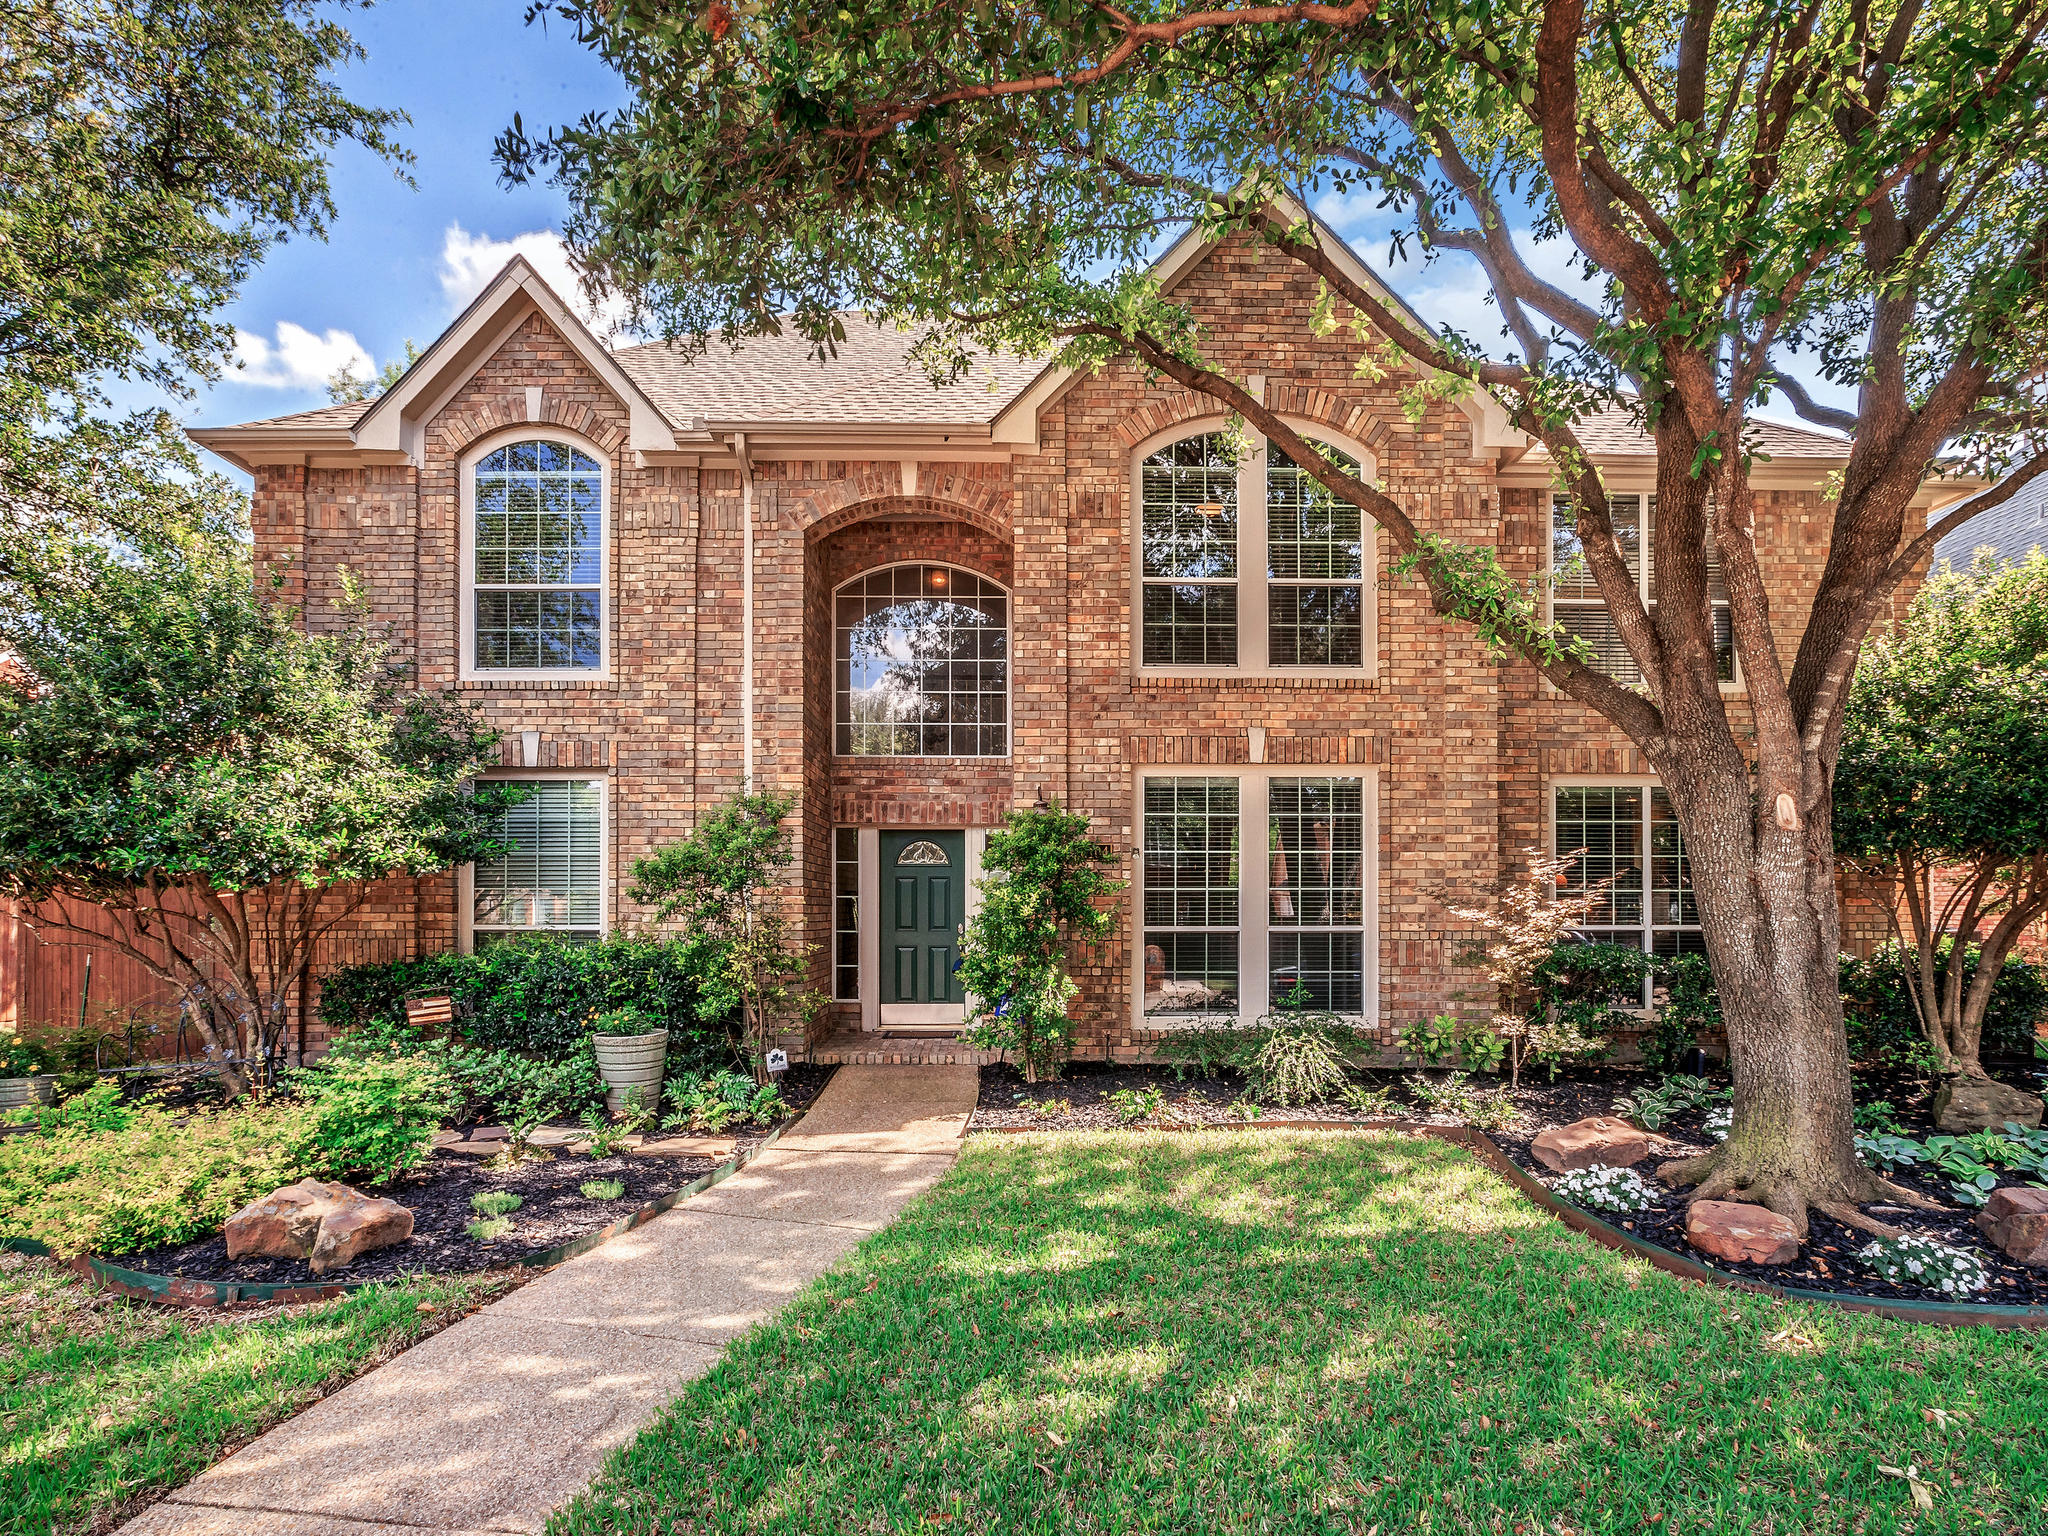 Homes for Sale in Plano, TX - 6104 Birkdale Dr. Plano, TX 75093